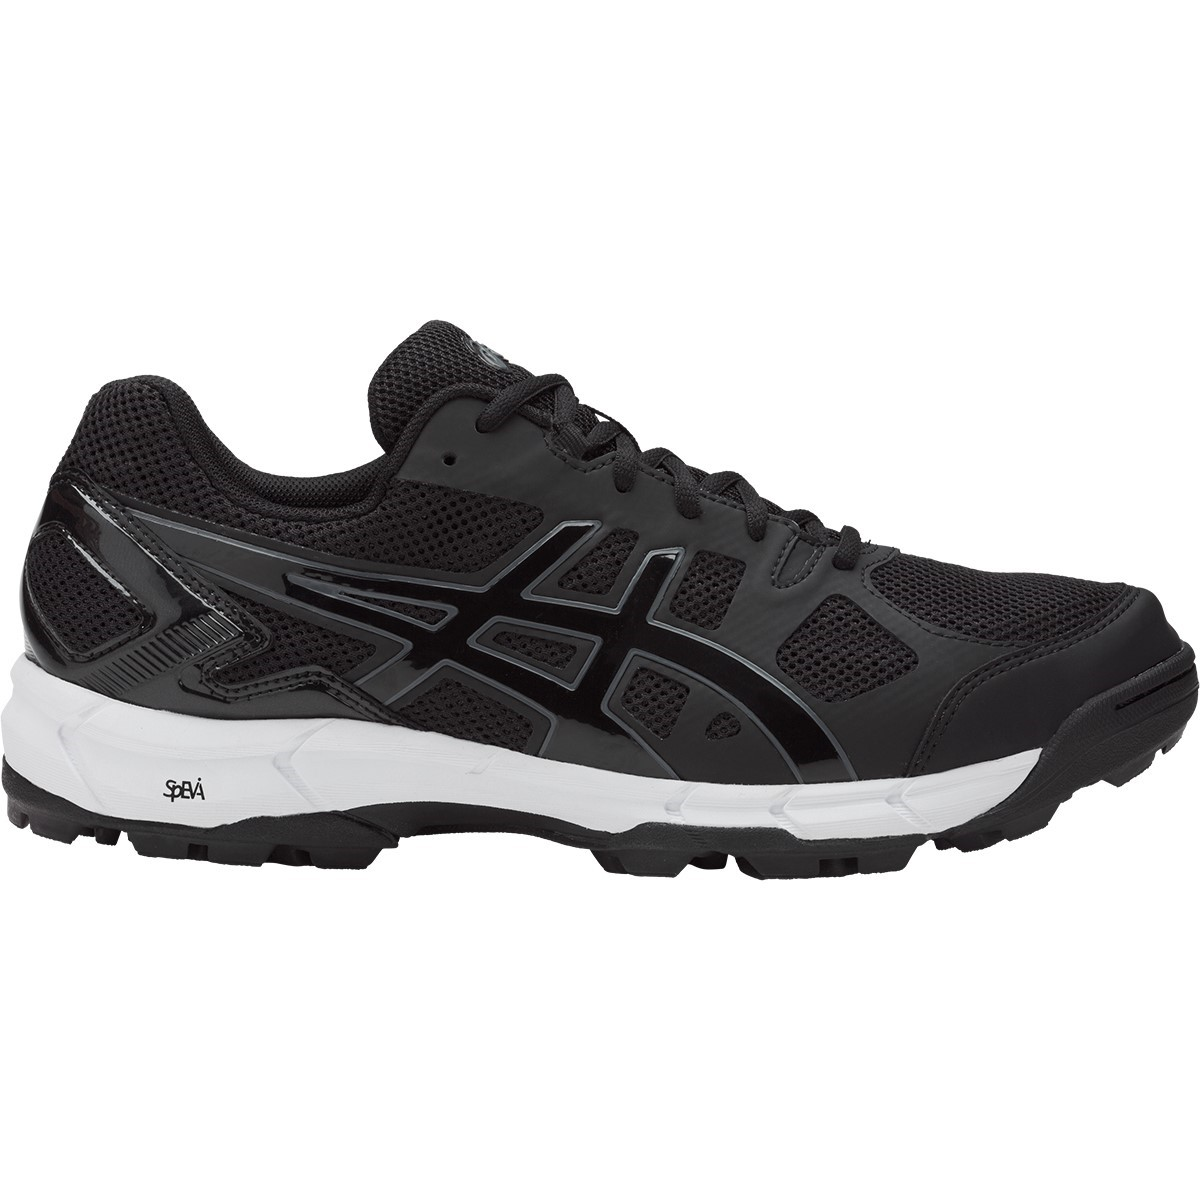 buying cheap select for best cute Asics Gel Lethal Elite 6 - Mens Turf Shoes